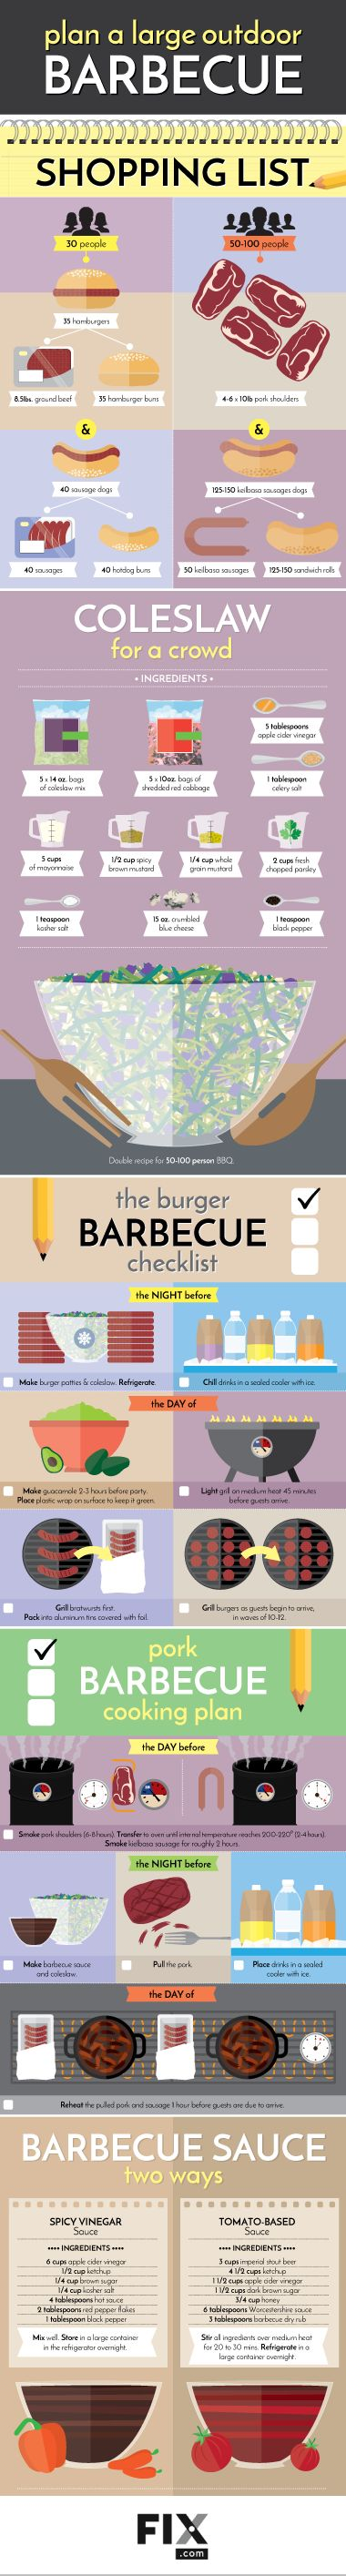 Throwing a cookout for a large group of guest requires some advance planning! Read our guide for hosting a BBQ for 30-100 guests!